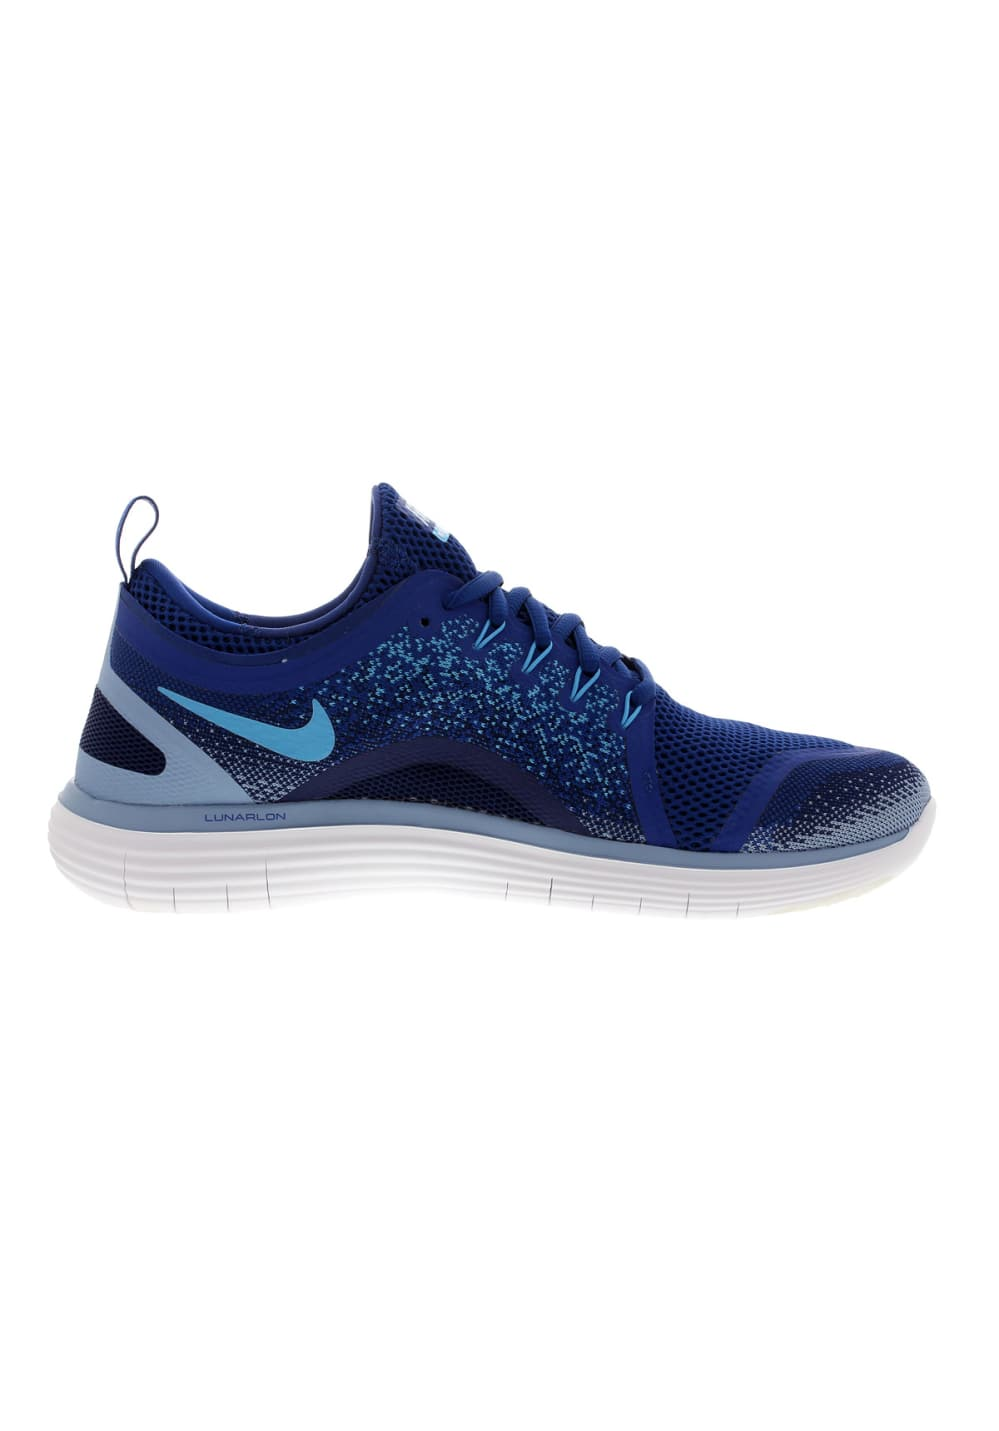 best service 667d1 8a909 Nike Free RN Distance 2 - Running shoes for Men - Blue